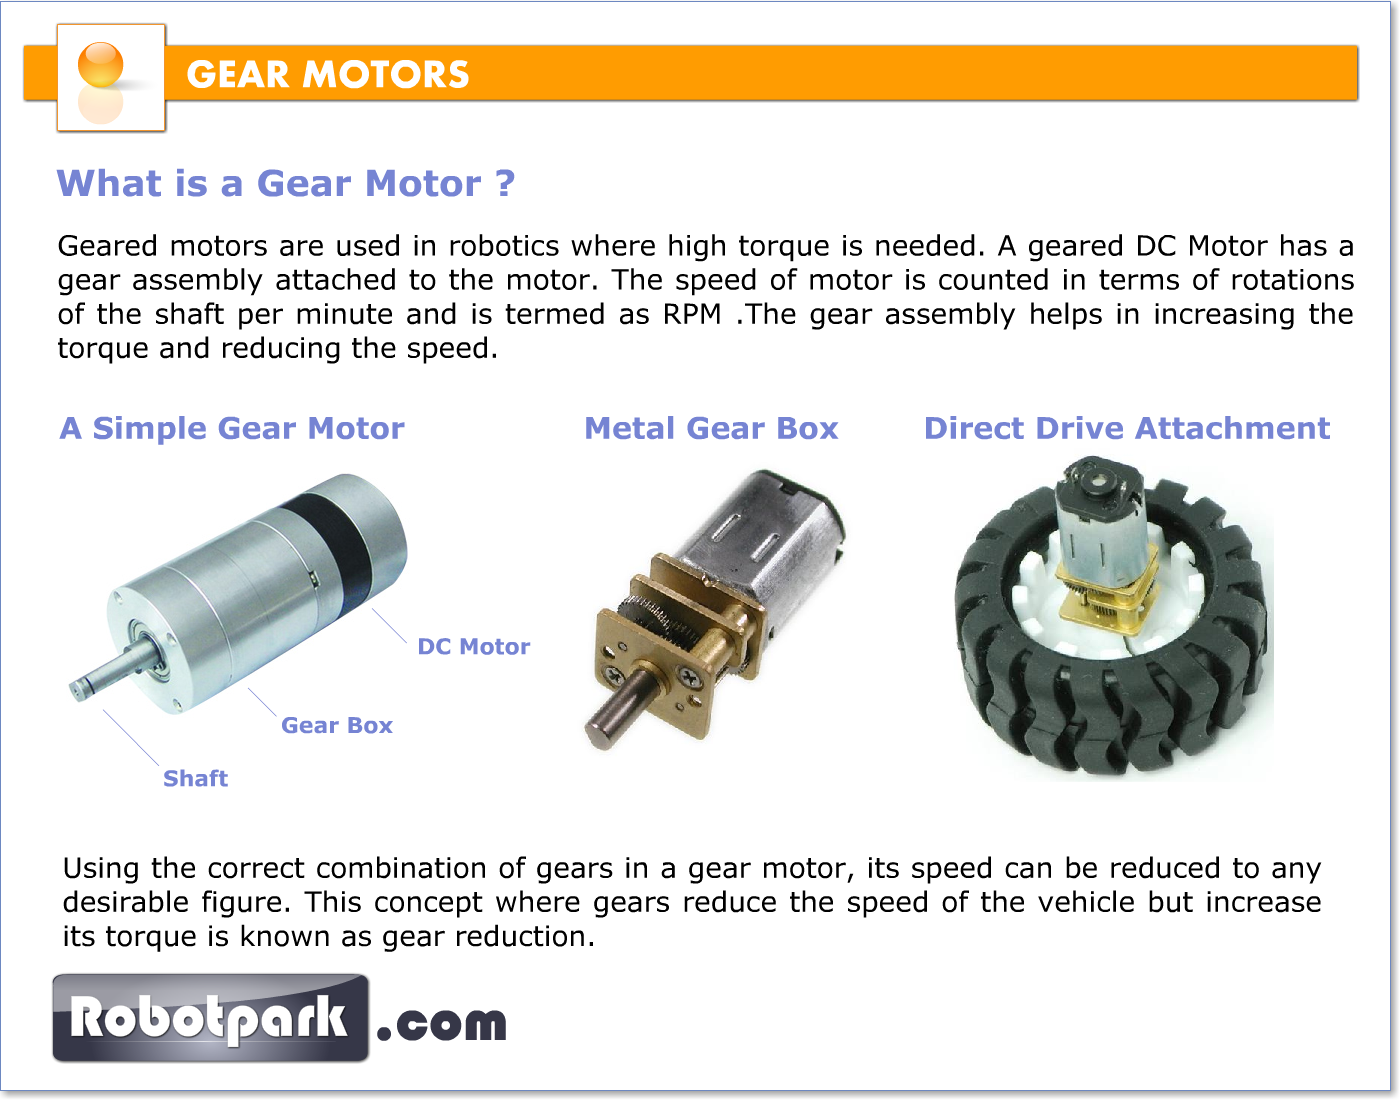 Gear motors gearboxes 51055 robotpark academy for Types of motors used in robotics pdf